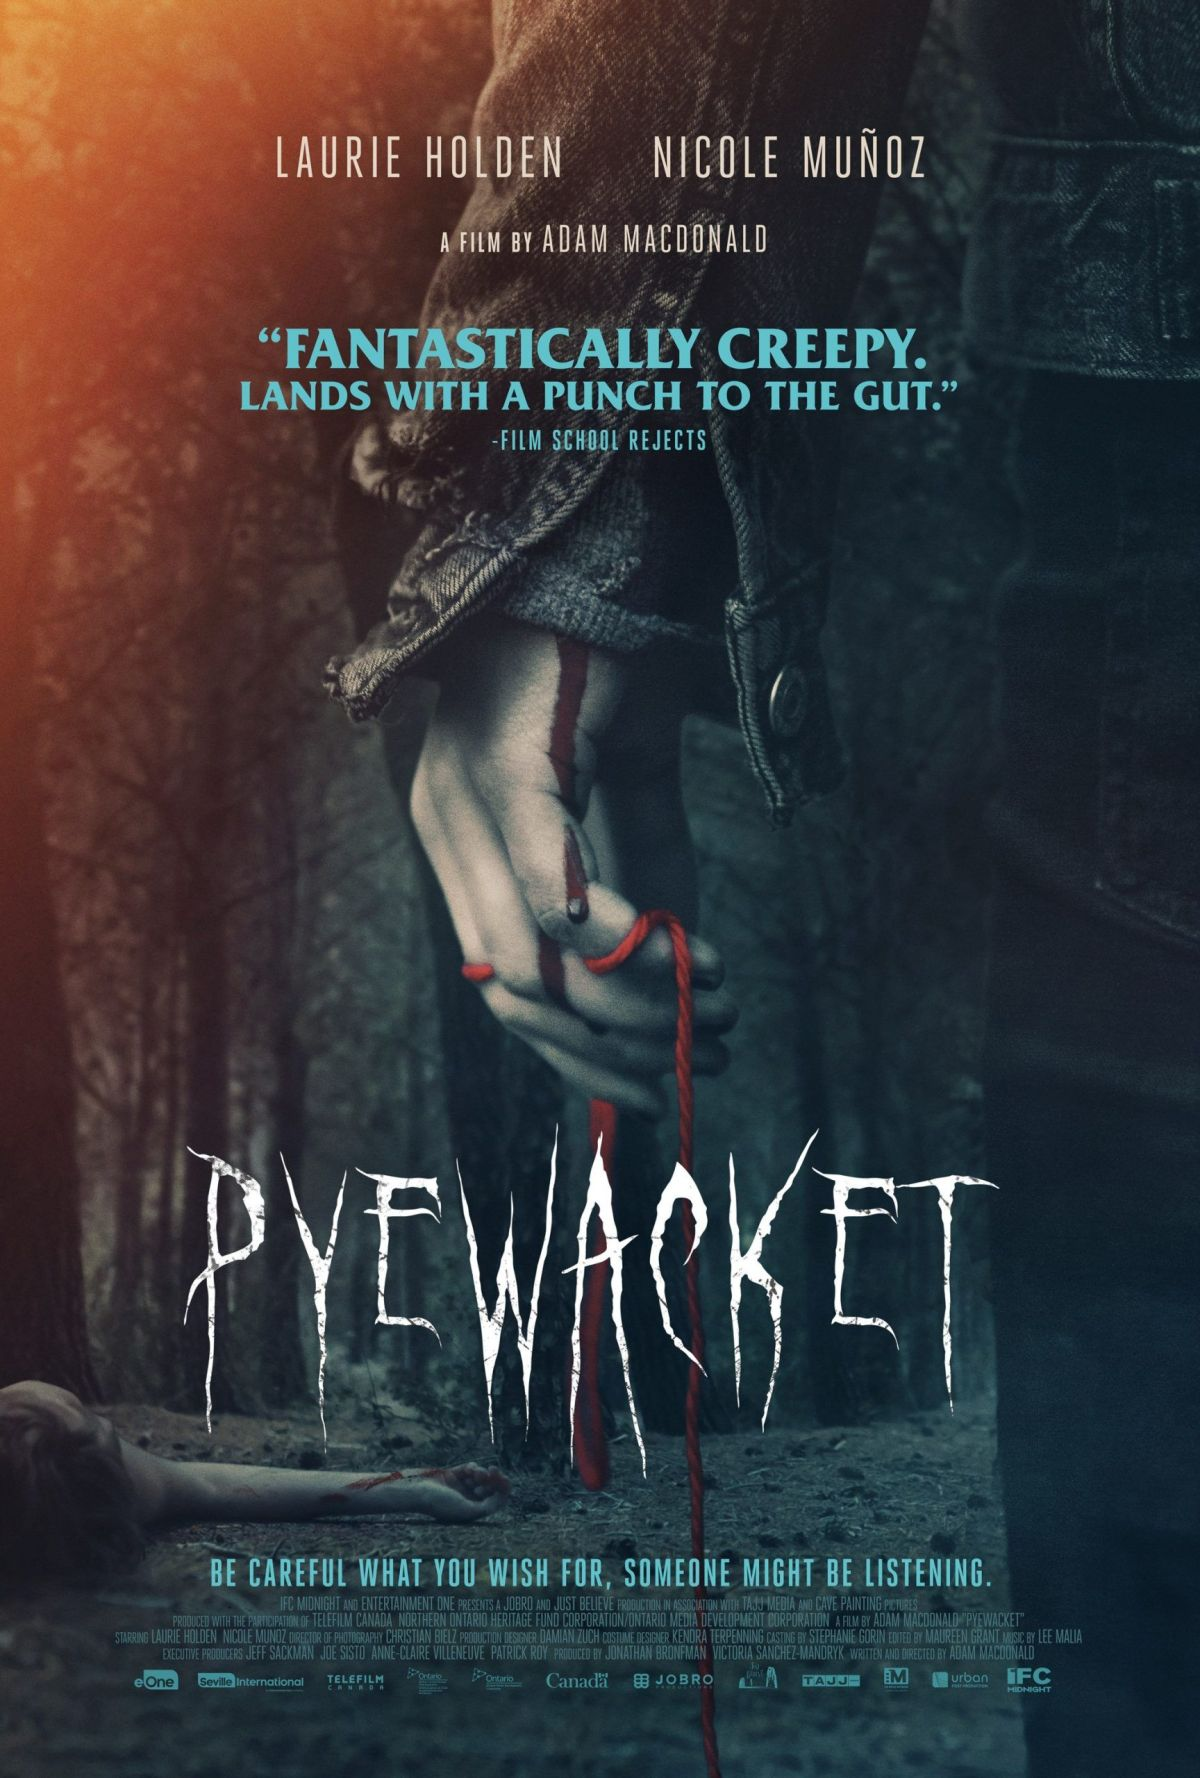 Pyewacket Supernatural horror movie streaming on Hulu